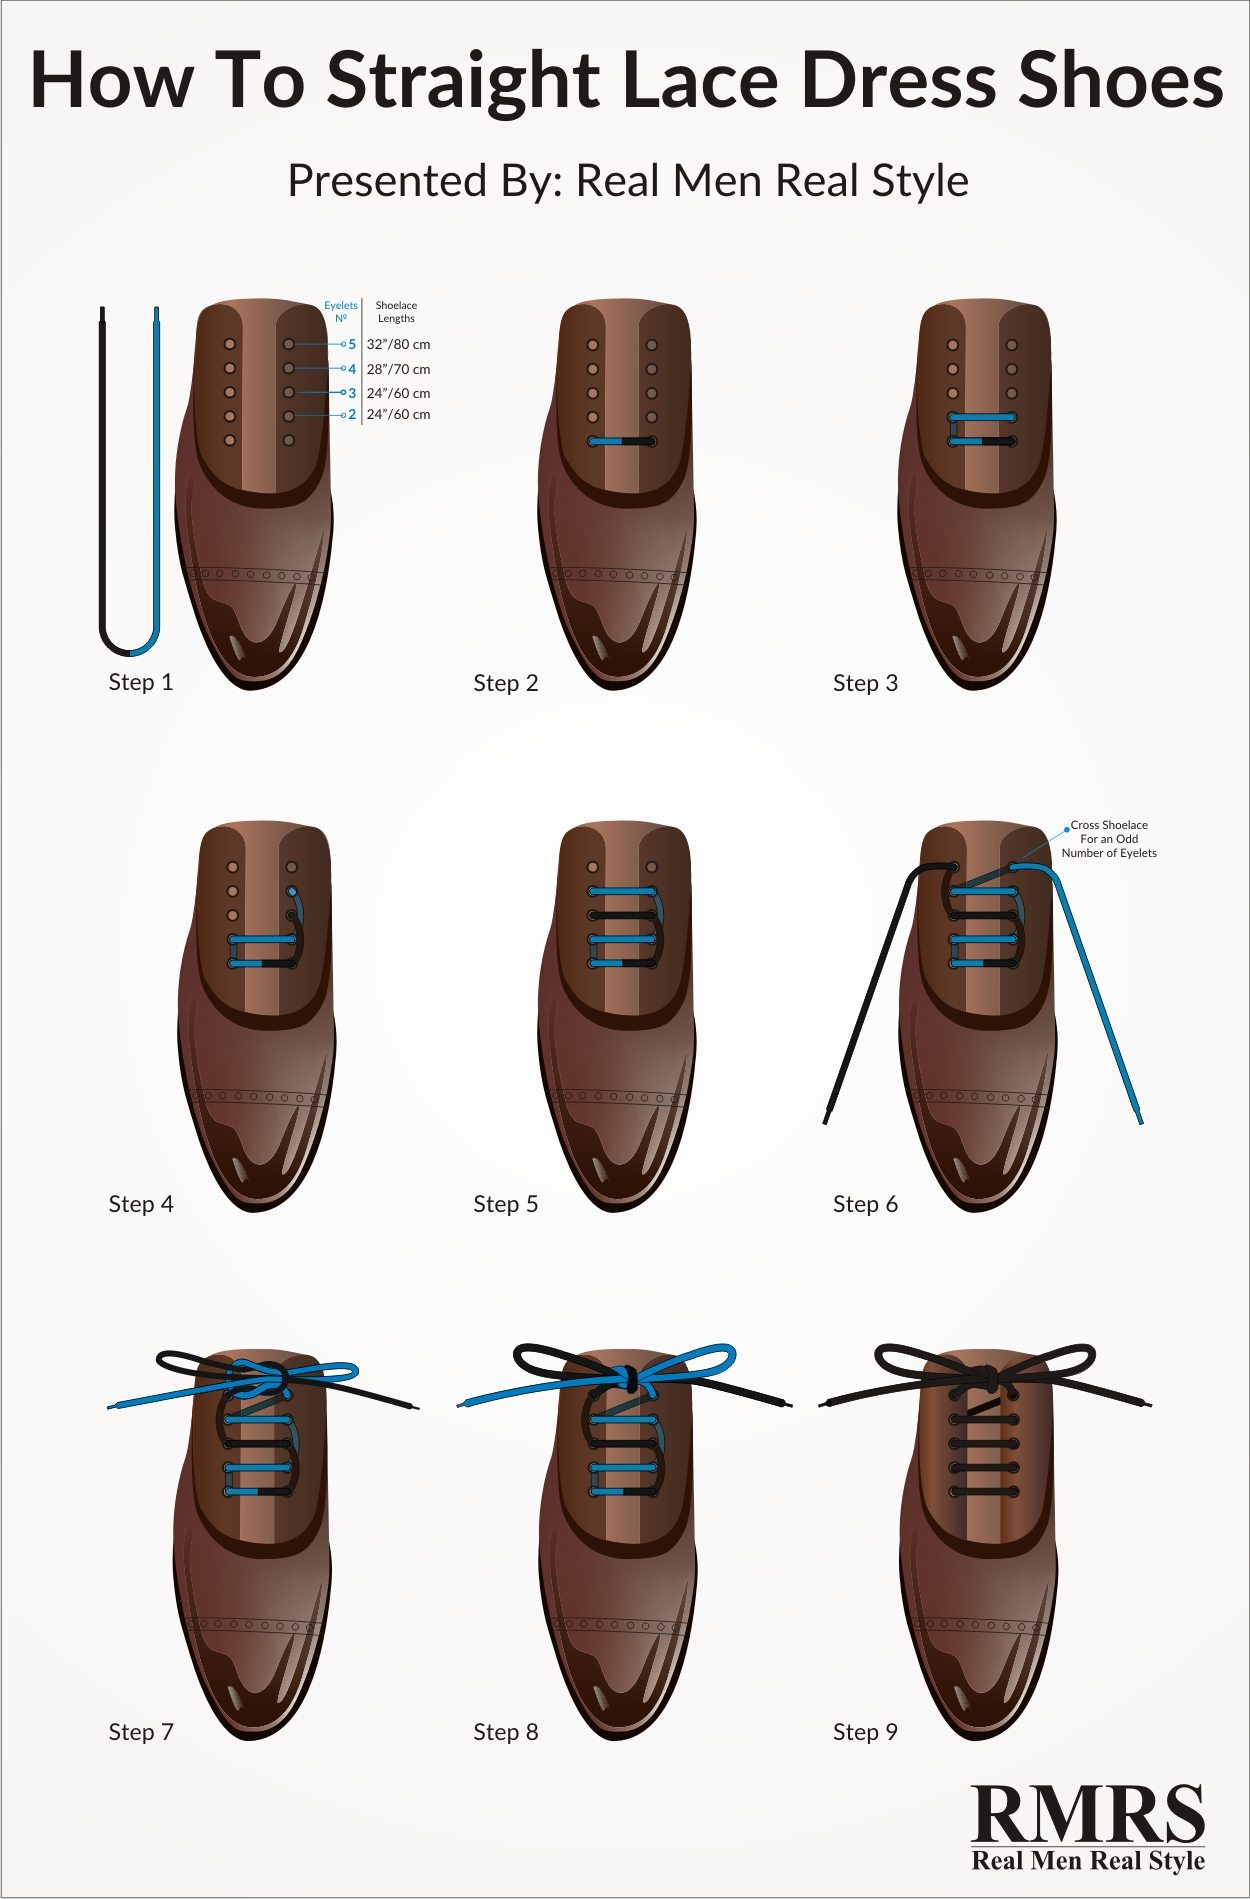 How To Straight Lace Your Dress Shoes – Infographic